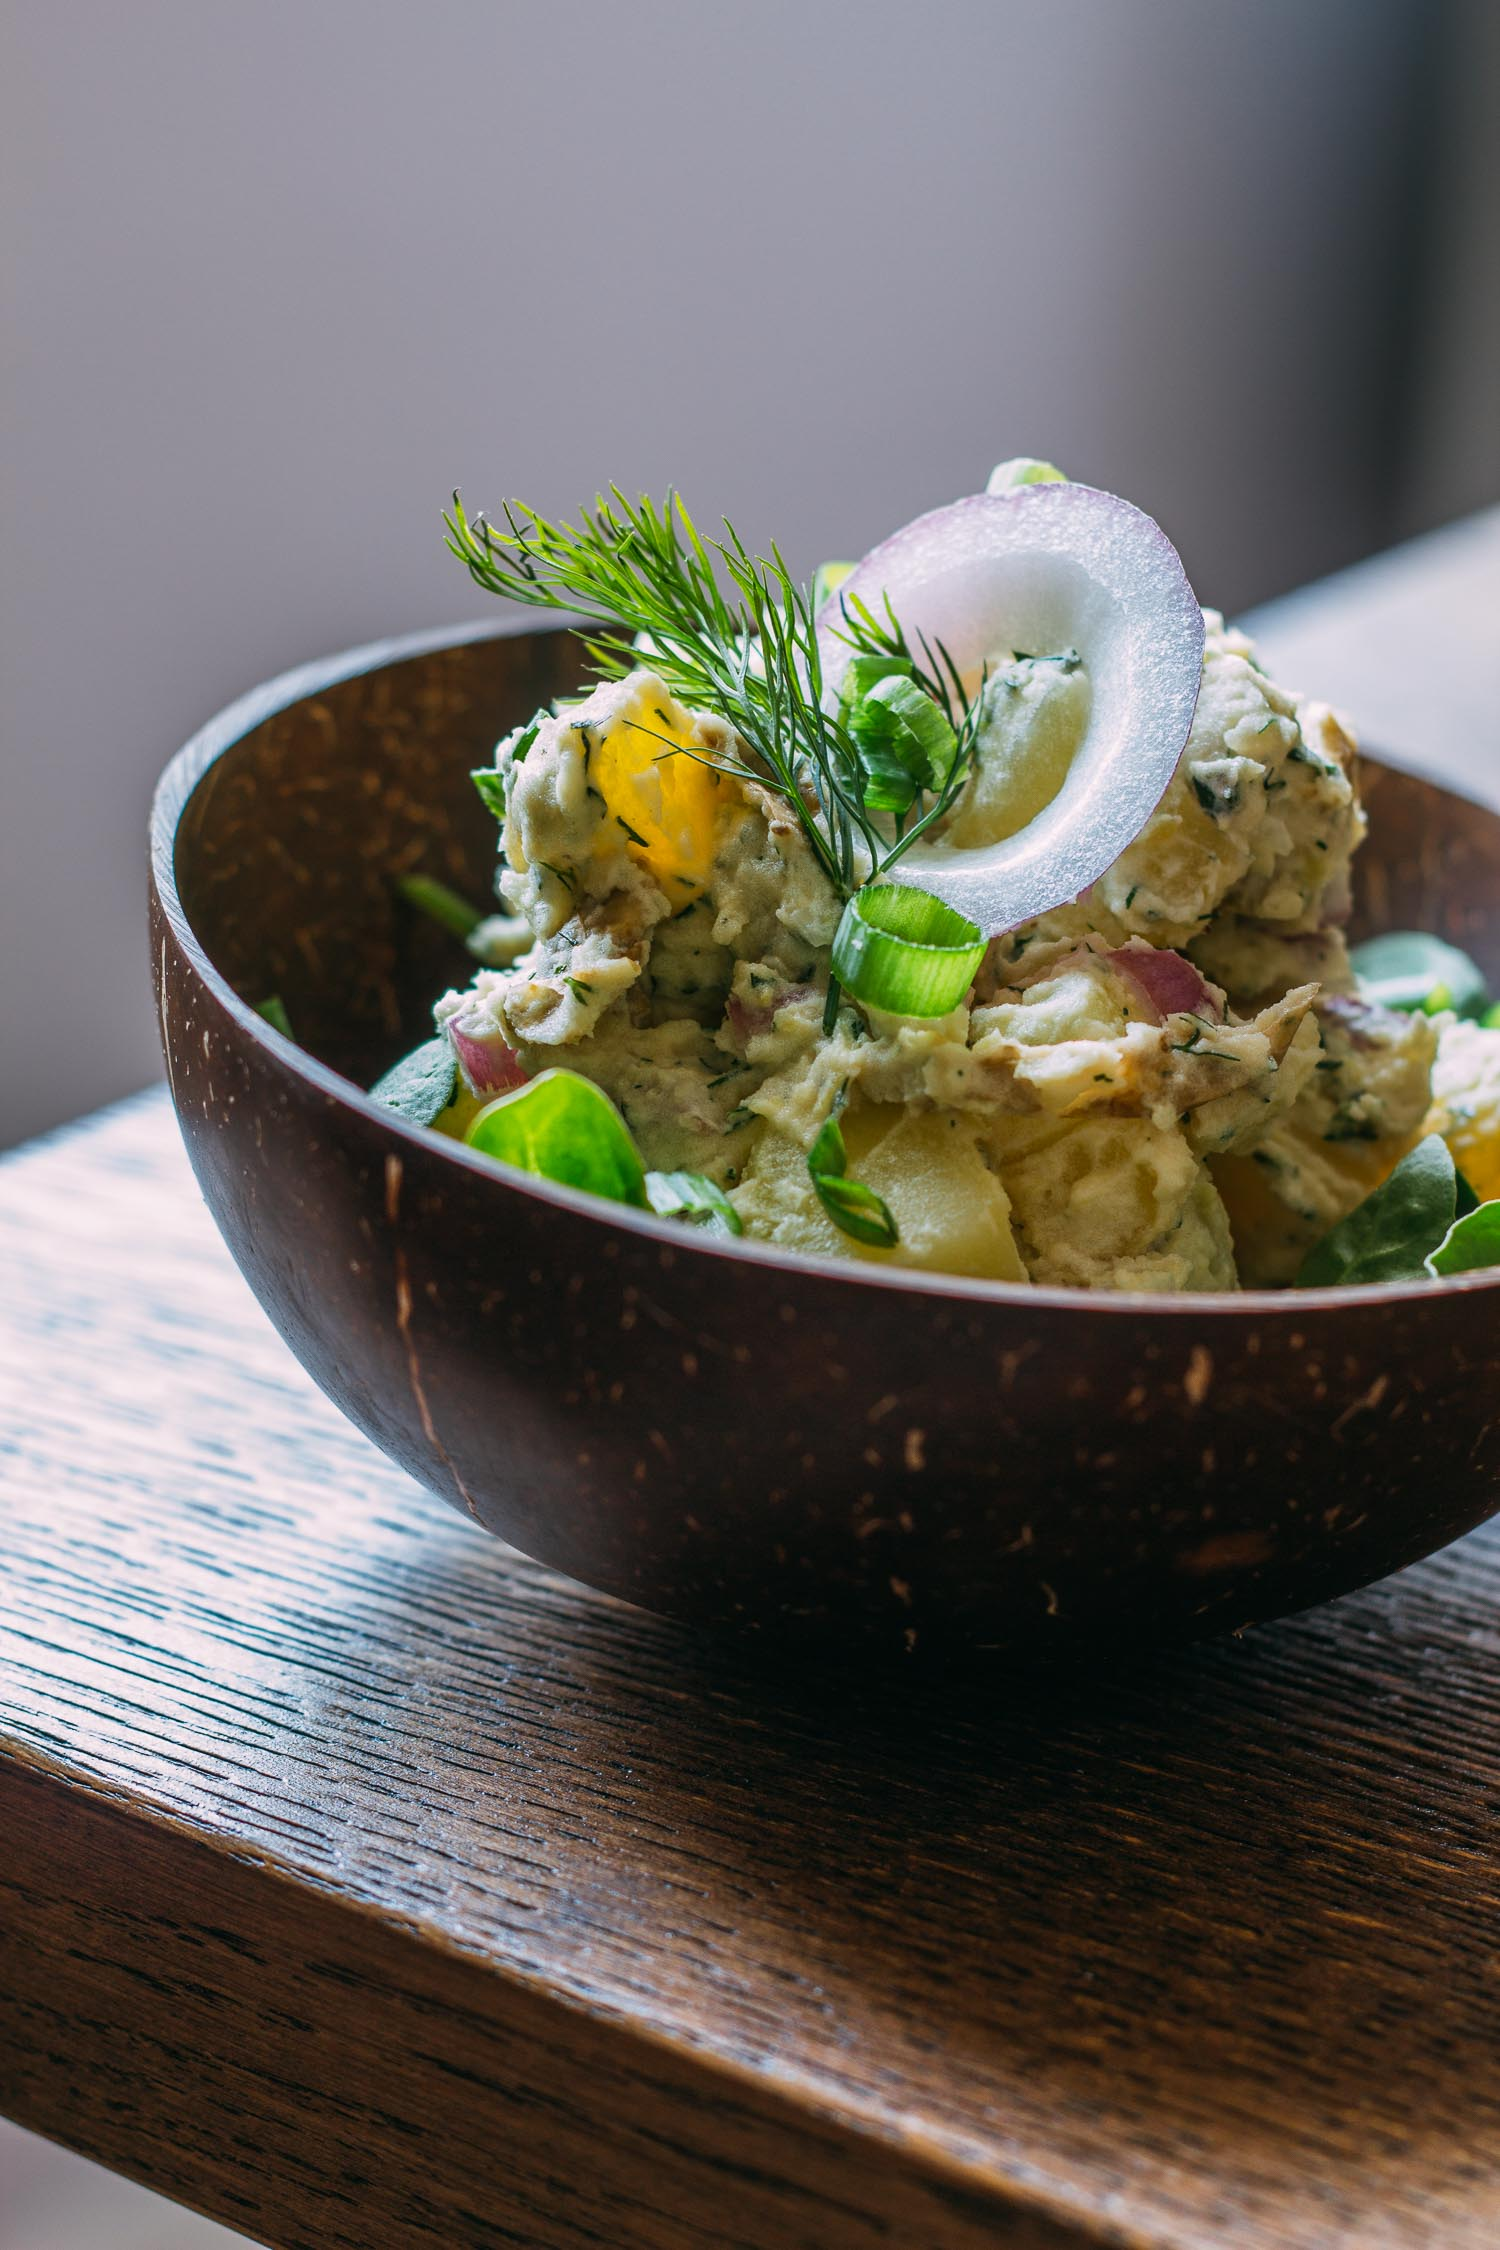 Tarragon Dill Potato Salad #healthy #sides #potatoes #salads #easy #recipes #vegetarian